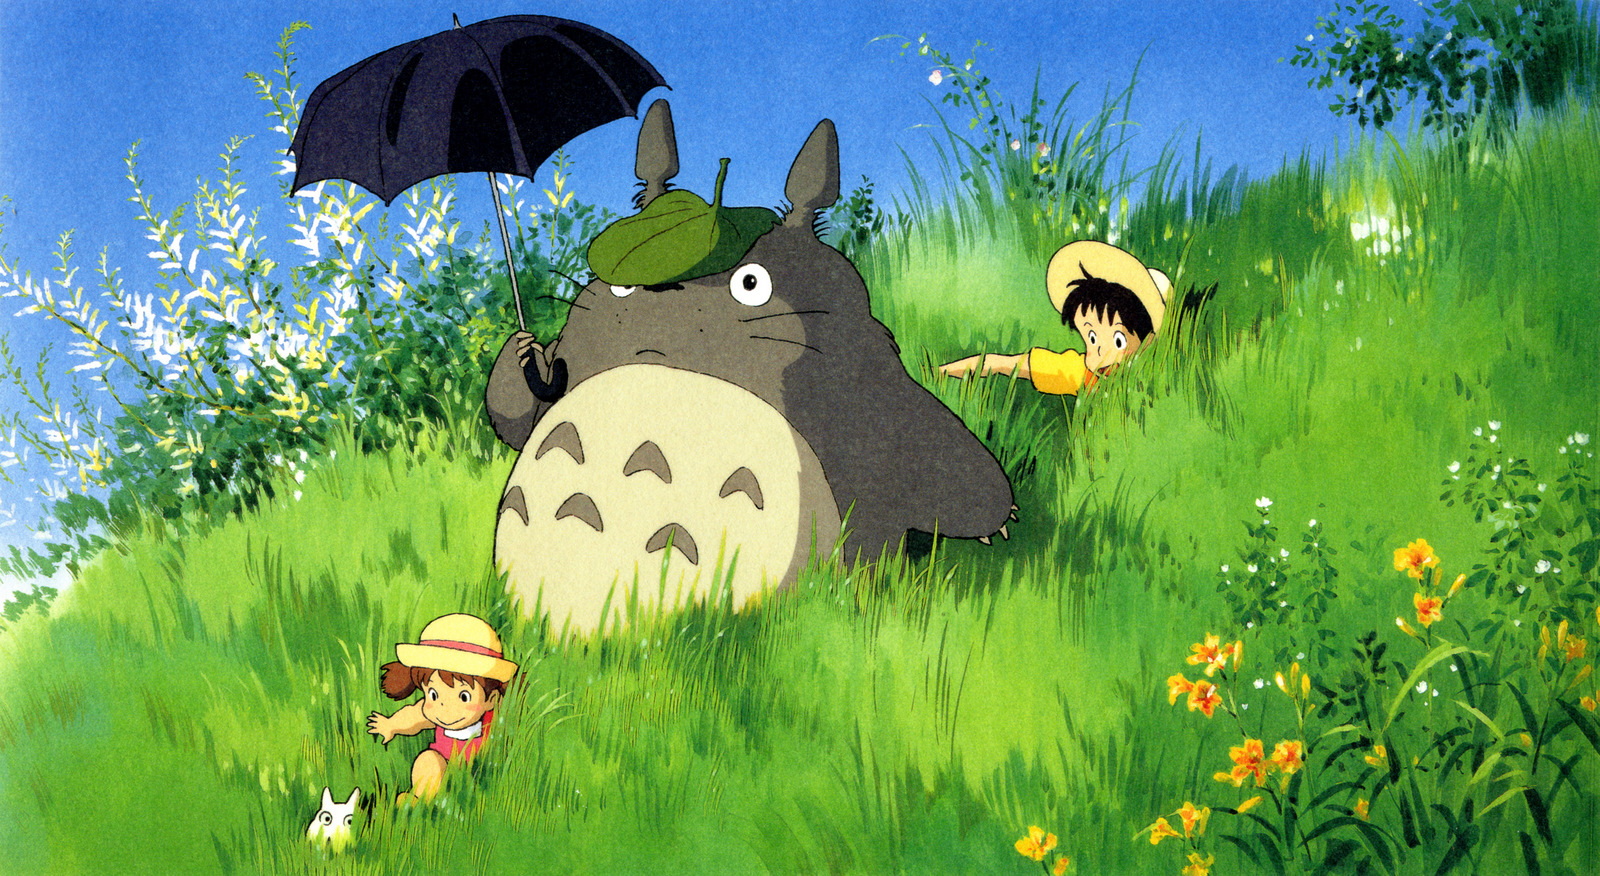 My Neighbor Totoro Backgrounds, Compatible - PC, Mobile, Gadgets| 1600x876 px